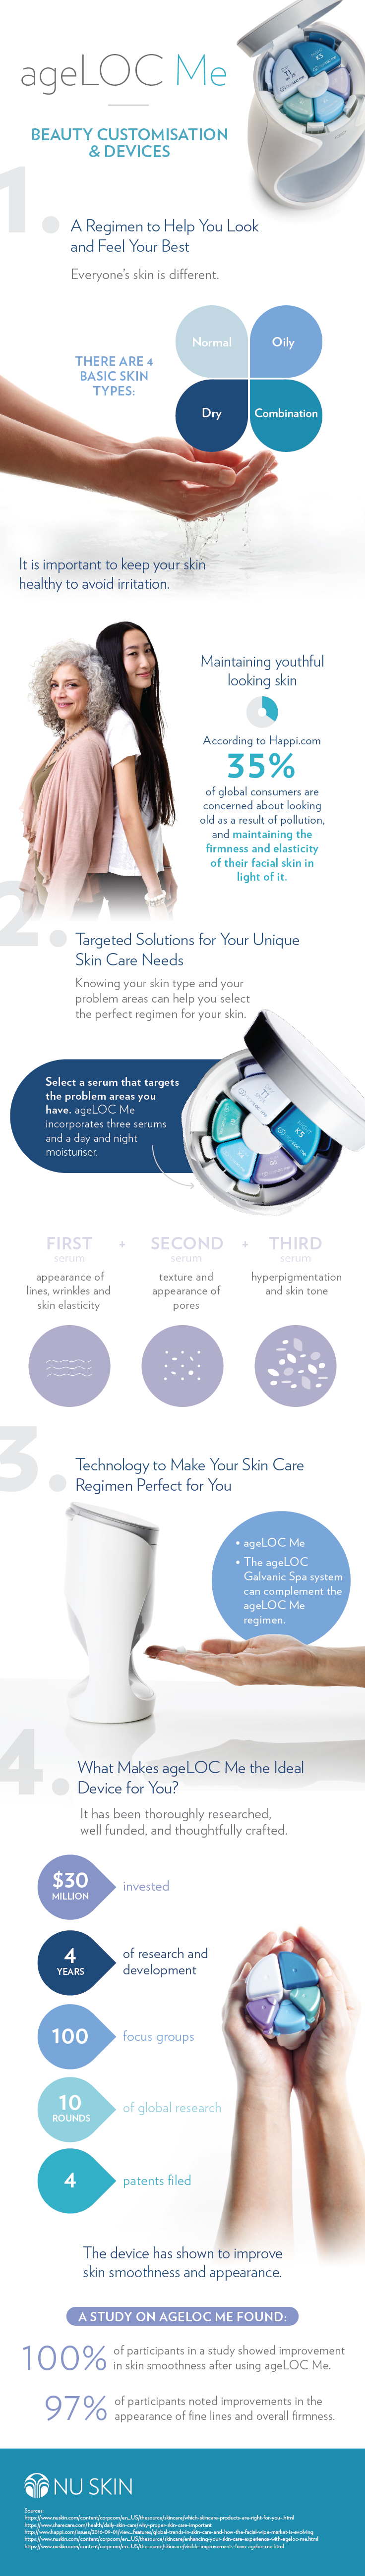 Nu Skin infographic, 4 reasons to use ageLOC Me